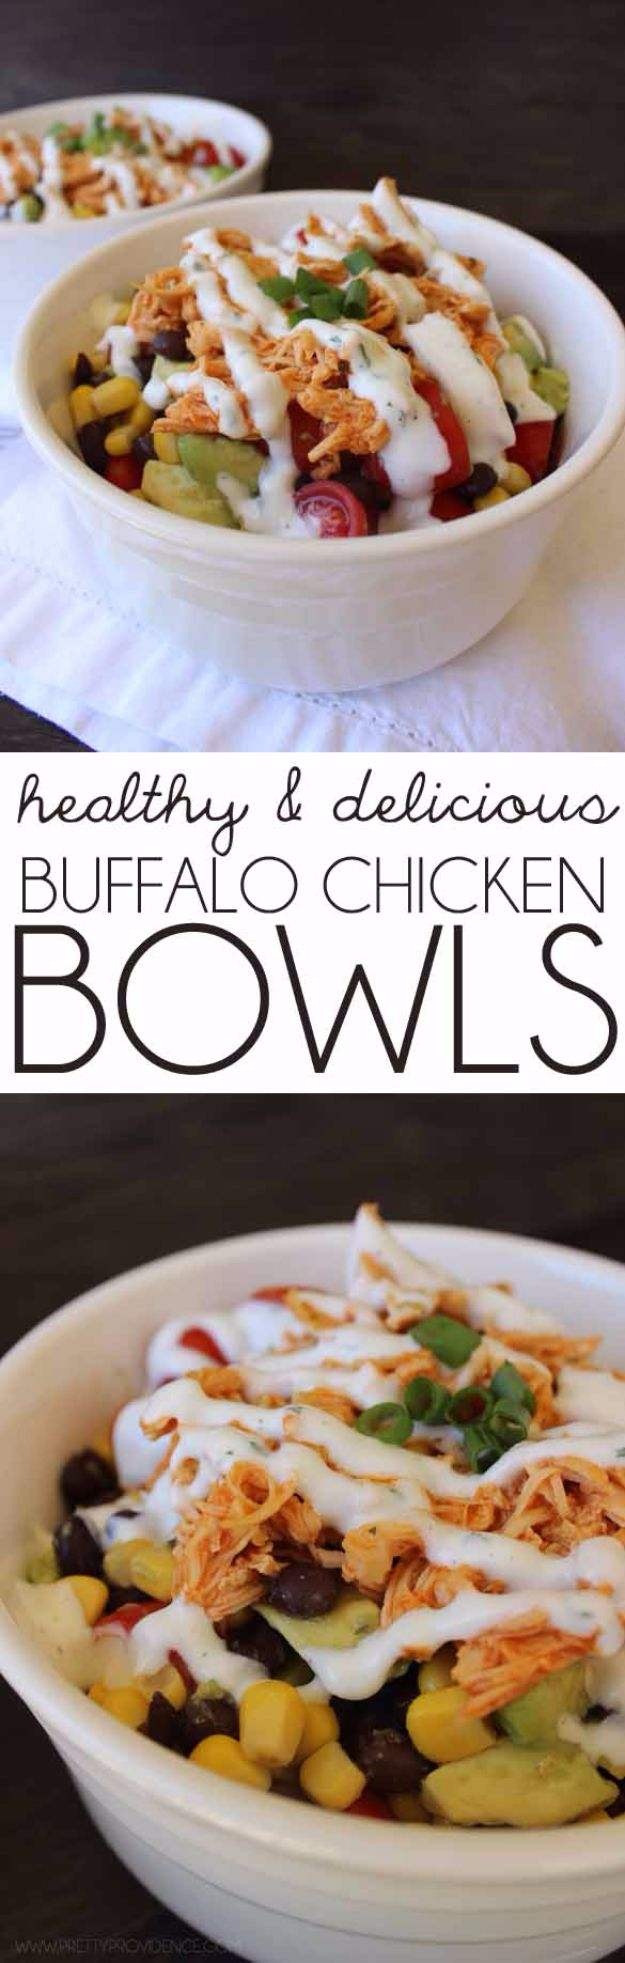 Healthy Lunch Ideas for Work - Healthy Buffalo Chicken Bowls - Quick and Easy Recipes You Can Pack for Lunches at the Office - Lowfat and Simple Ideas for Eating on the Job - Microwave, No Heat, Mason Jar Salads, Sandwiches, Wraps, Soups and Bowls http://diyjoy.com/healthy-lunch-ideas-work